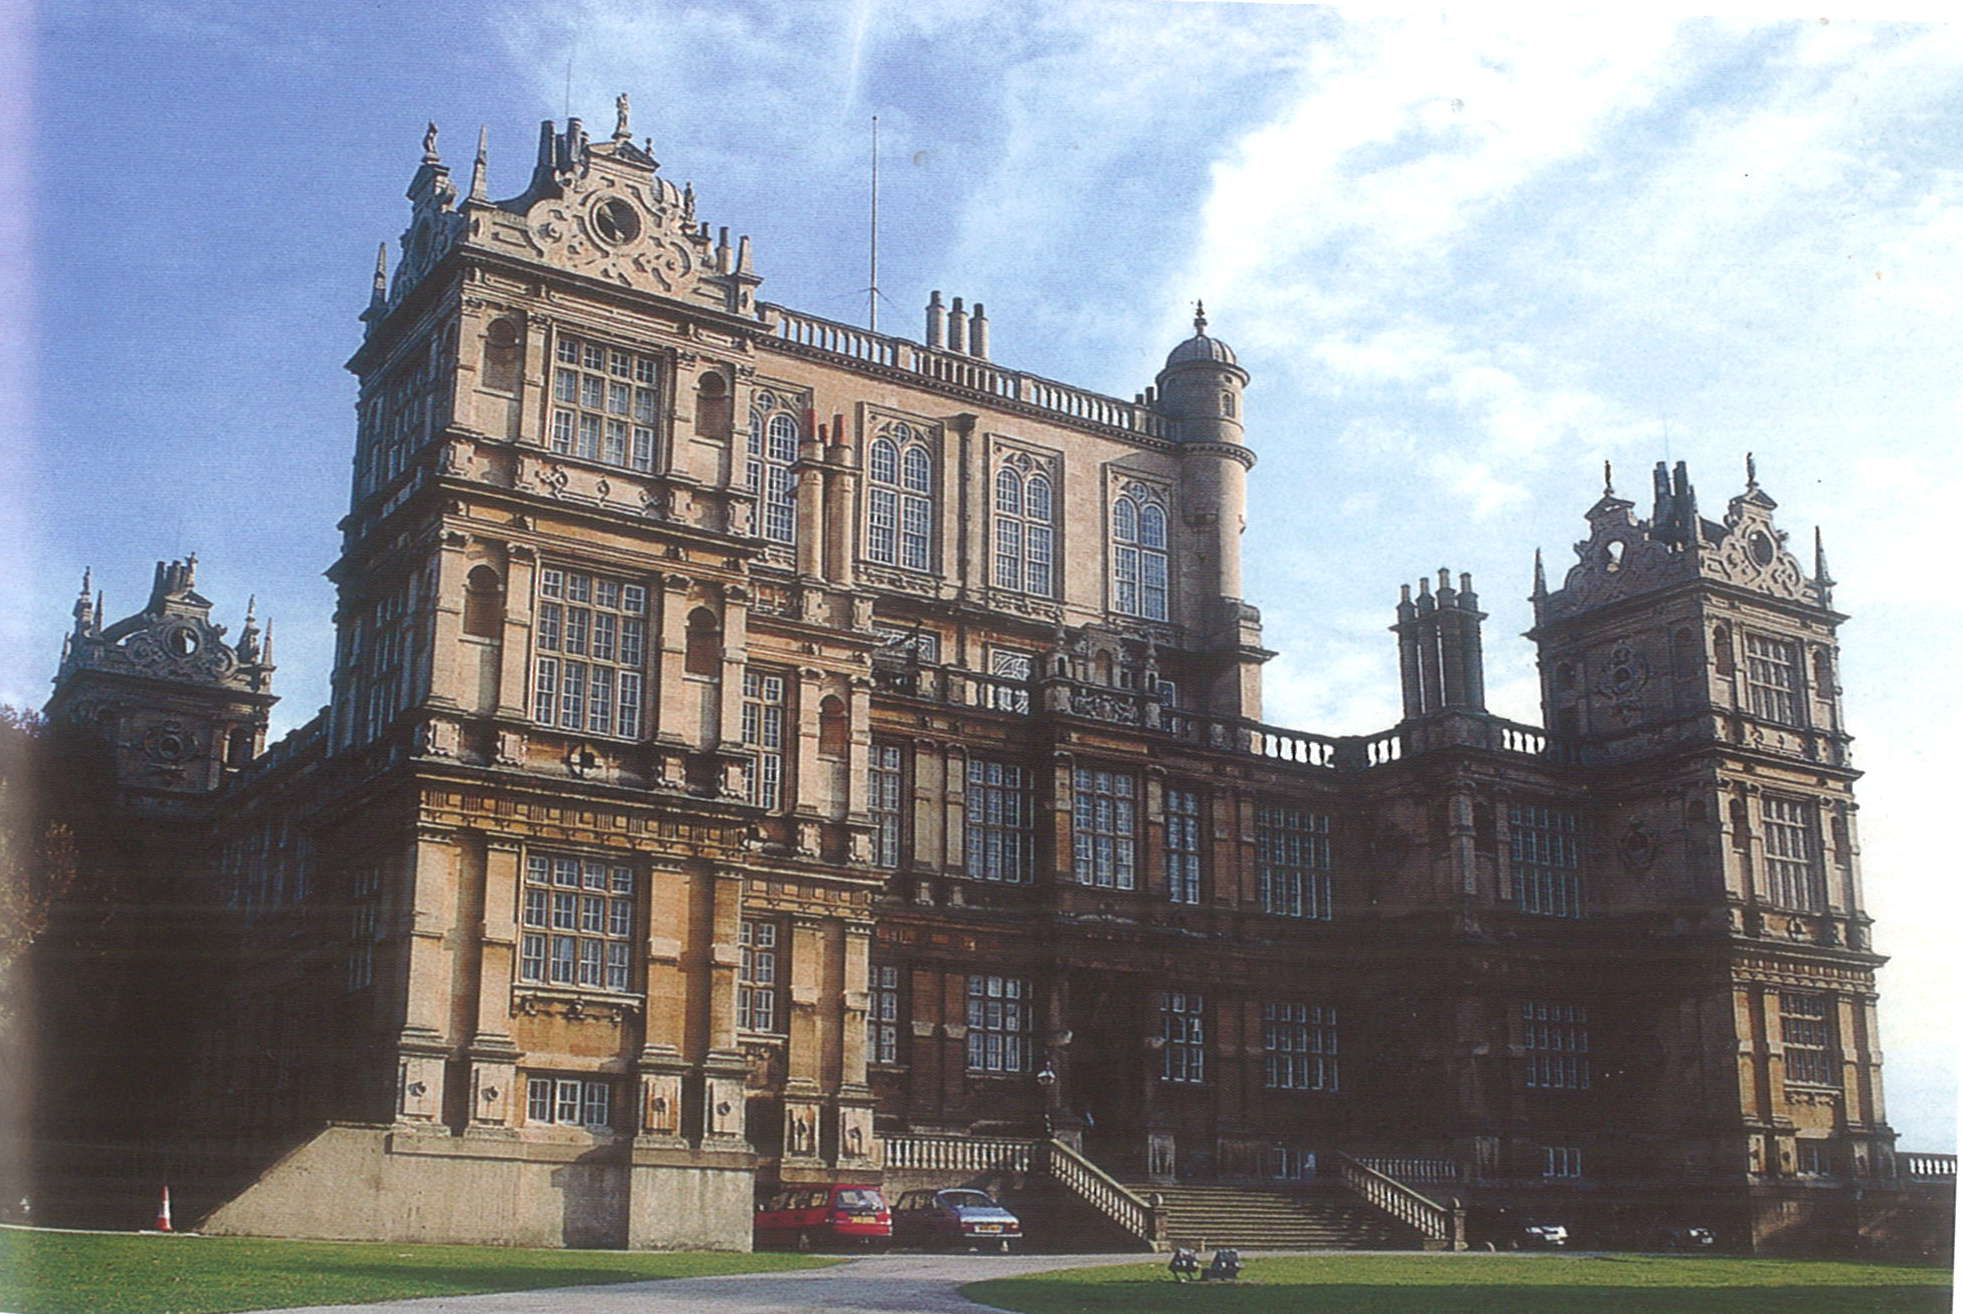 A photograph of the front of an extremely large and richly detailed manor house. Cars are parked beside a wide staircase leading to the front entrance, which is flanked by two large towers. A third tower can be seen further back on the structure. There are a great number of large windows.